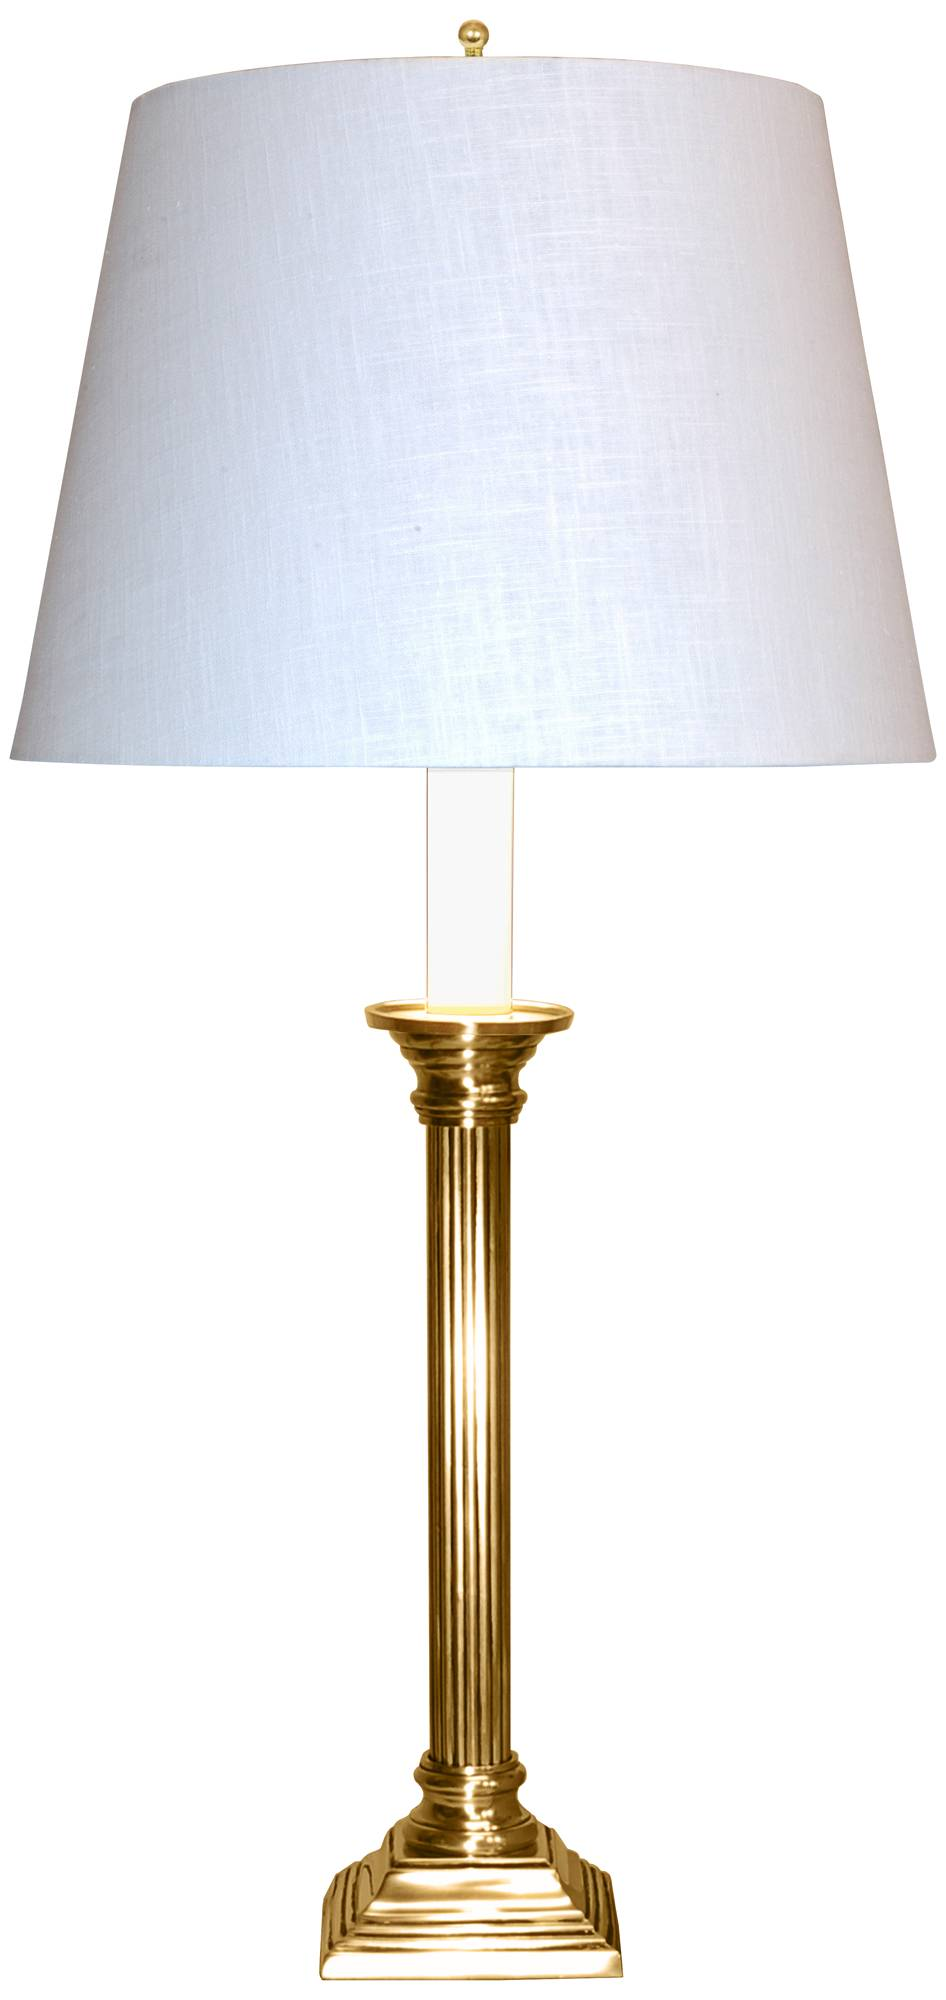 Apollo polished brass tall table lamp with off white shade 9x933 lamps plus